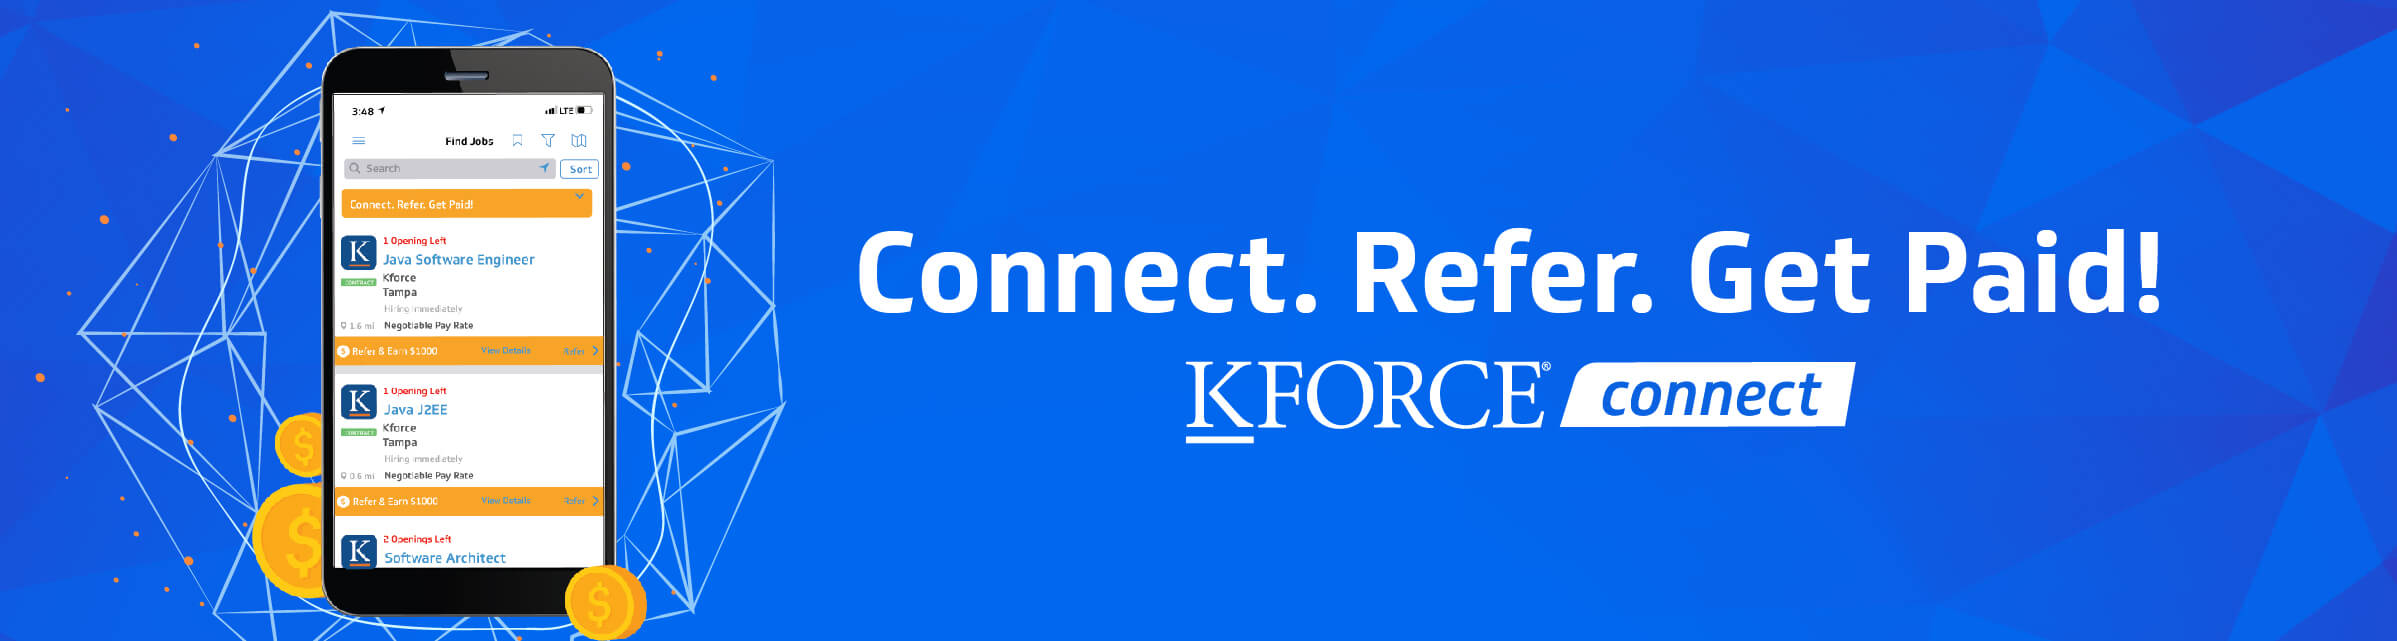 KFORCEconnect referral app